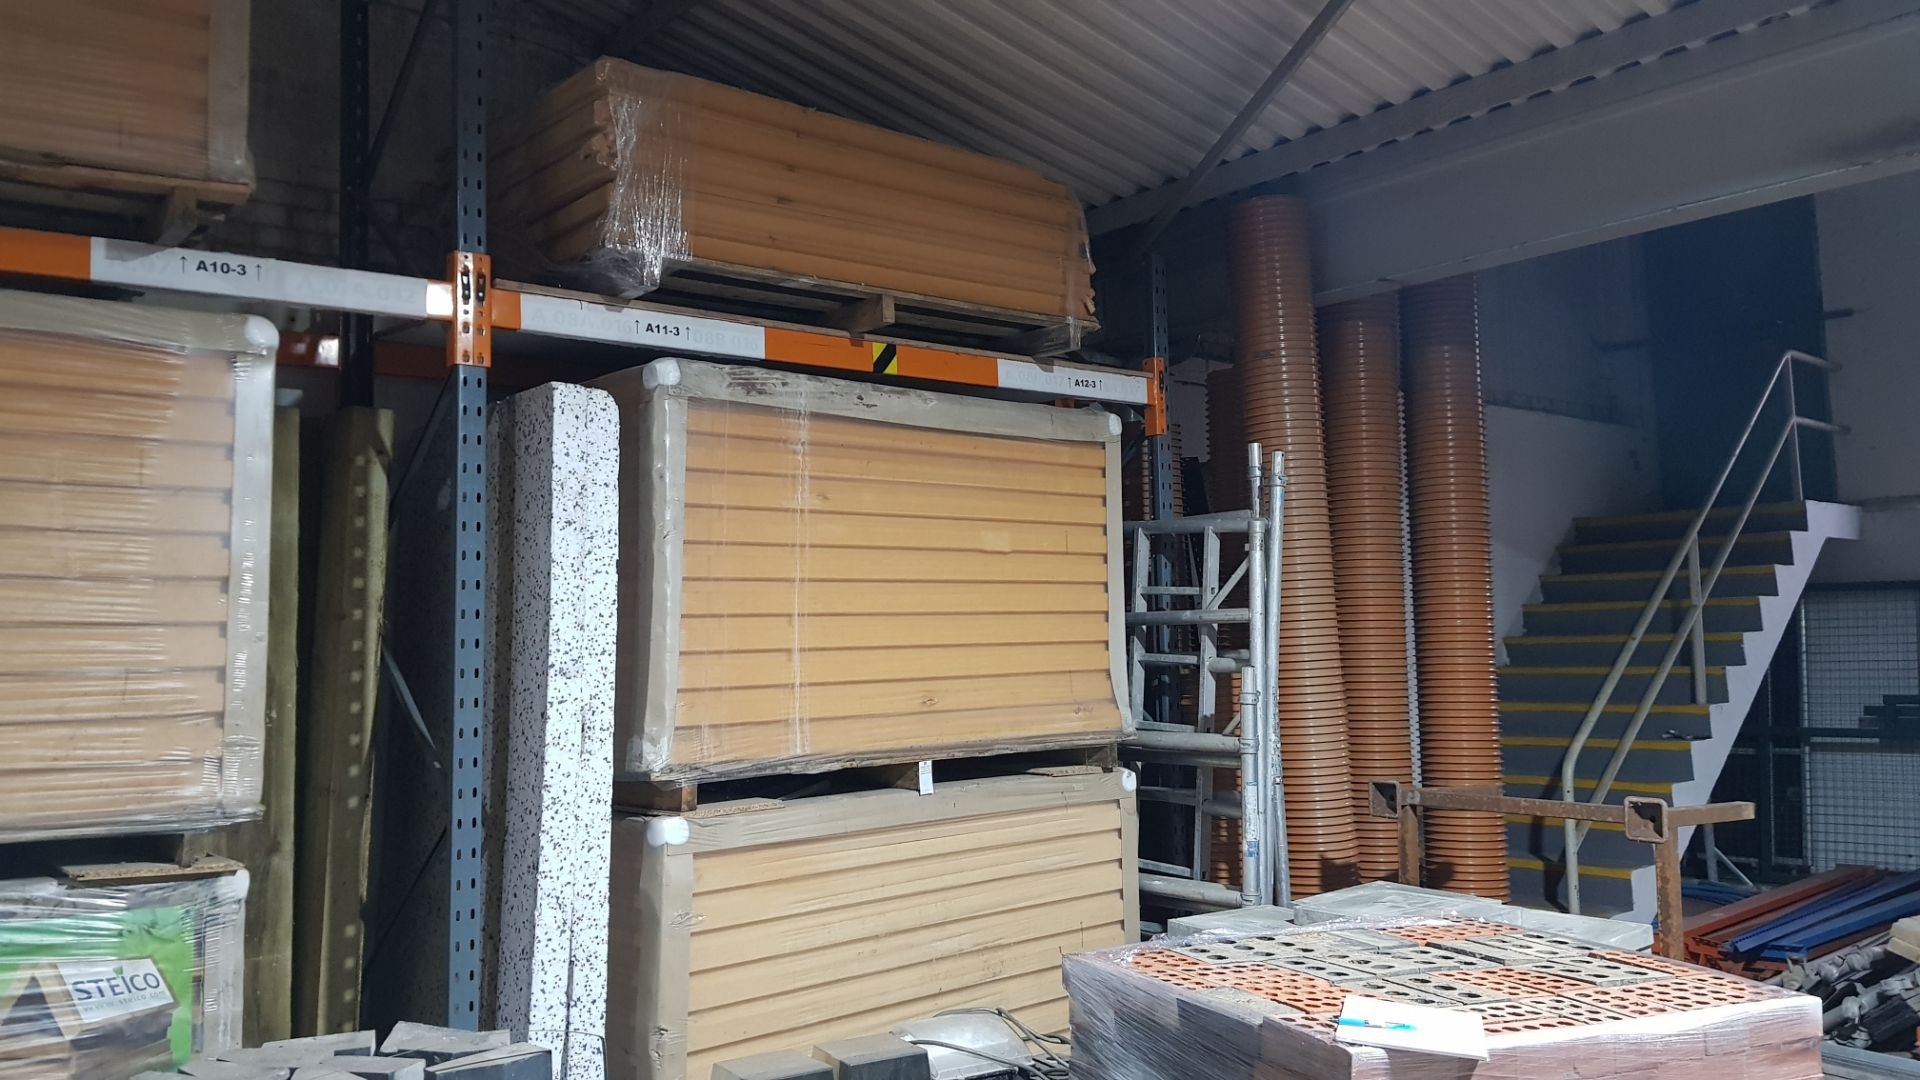 27 X SHEETS OF (STEICO) 1880X600X100 INSULATION BOARD - CONTAINED ON 3 X PALLETS